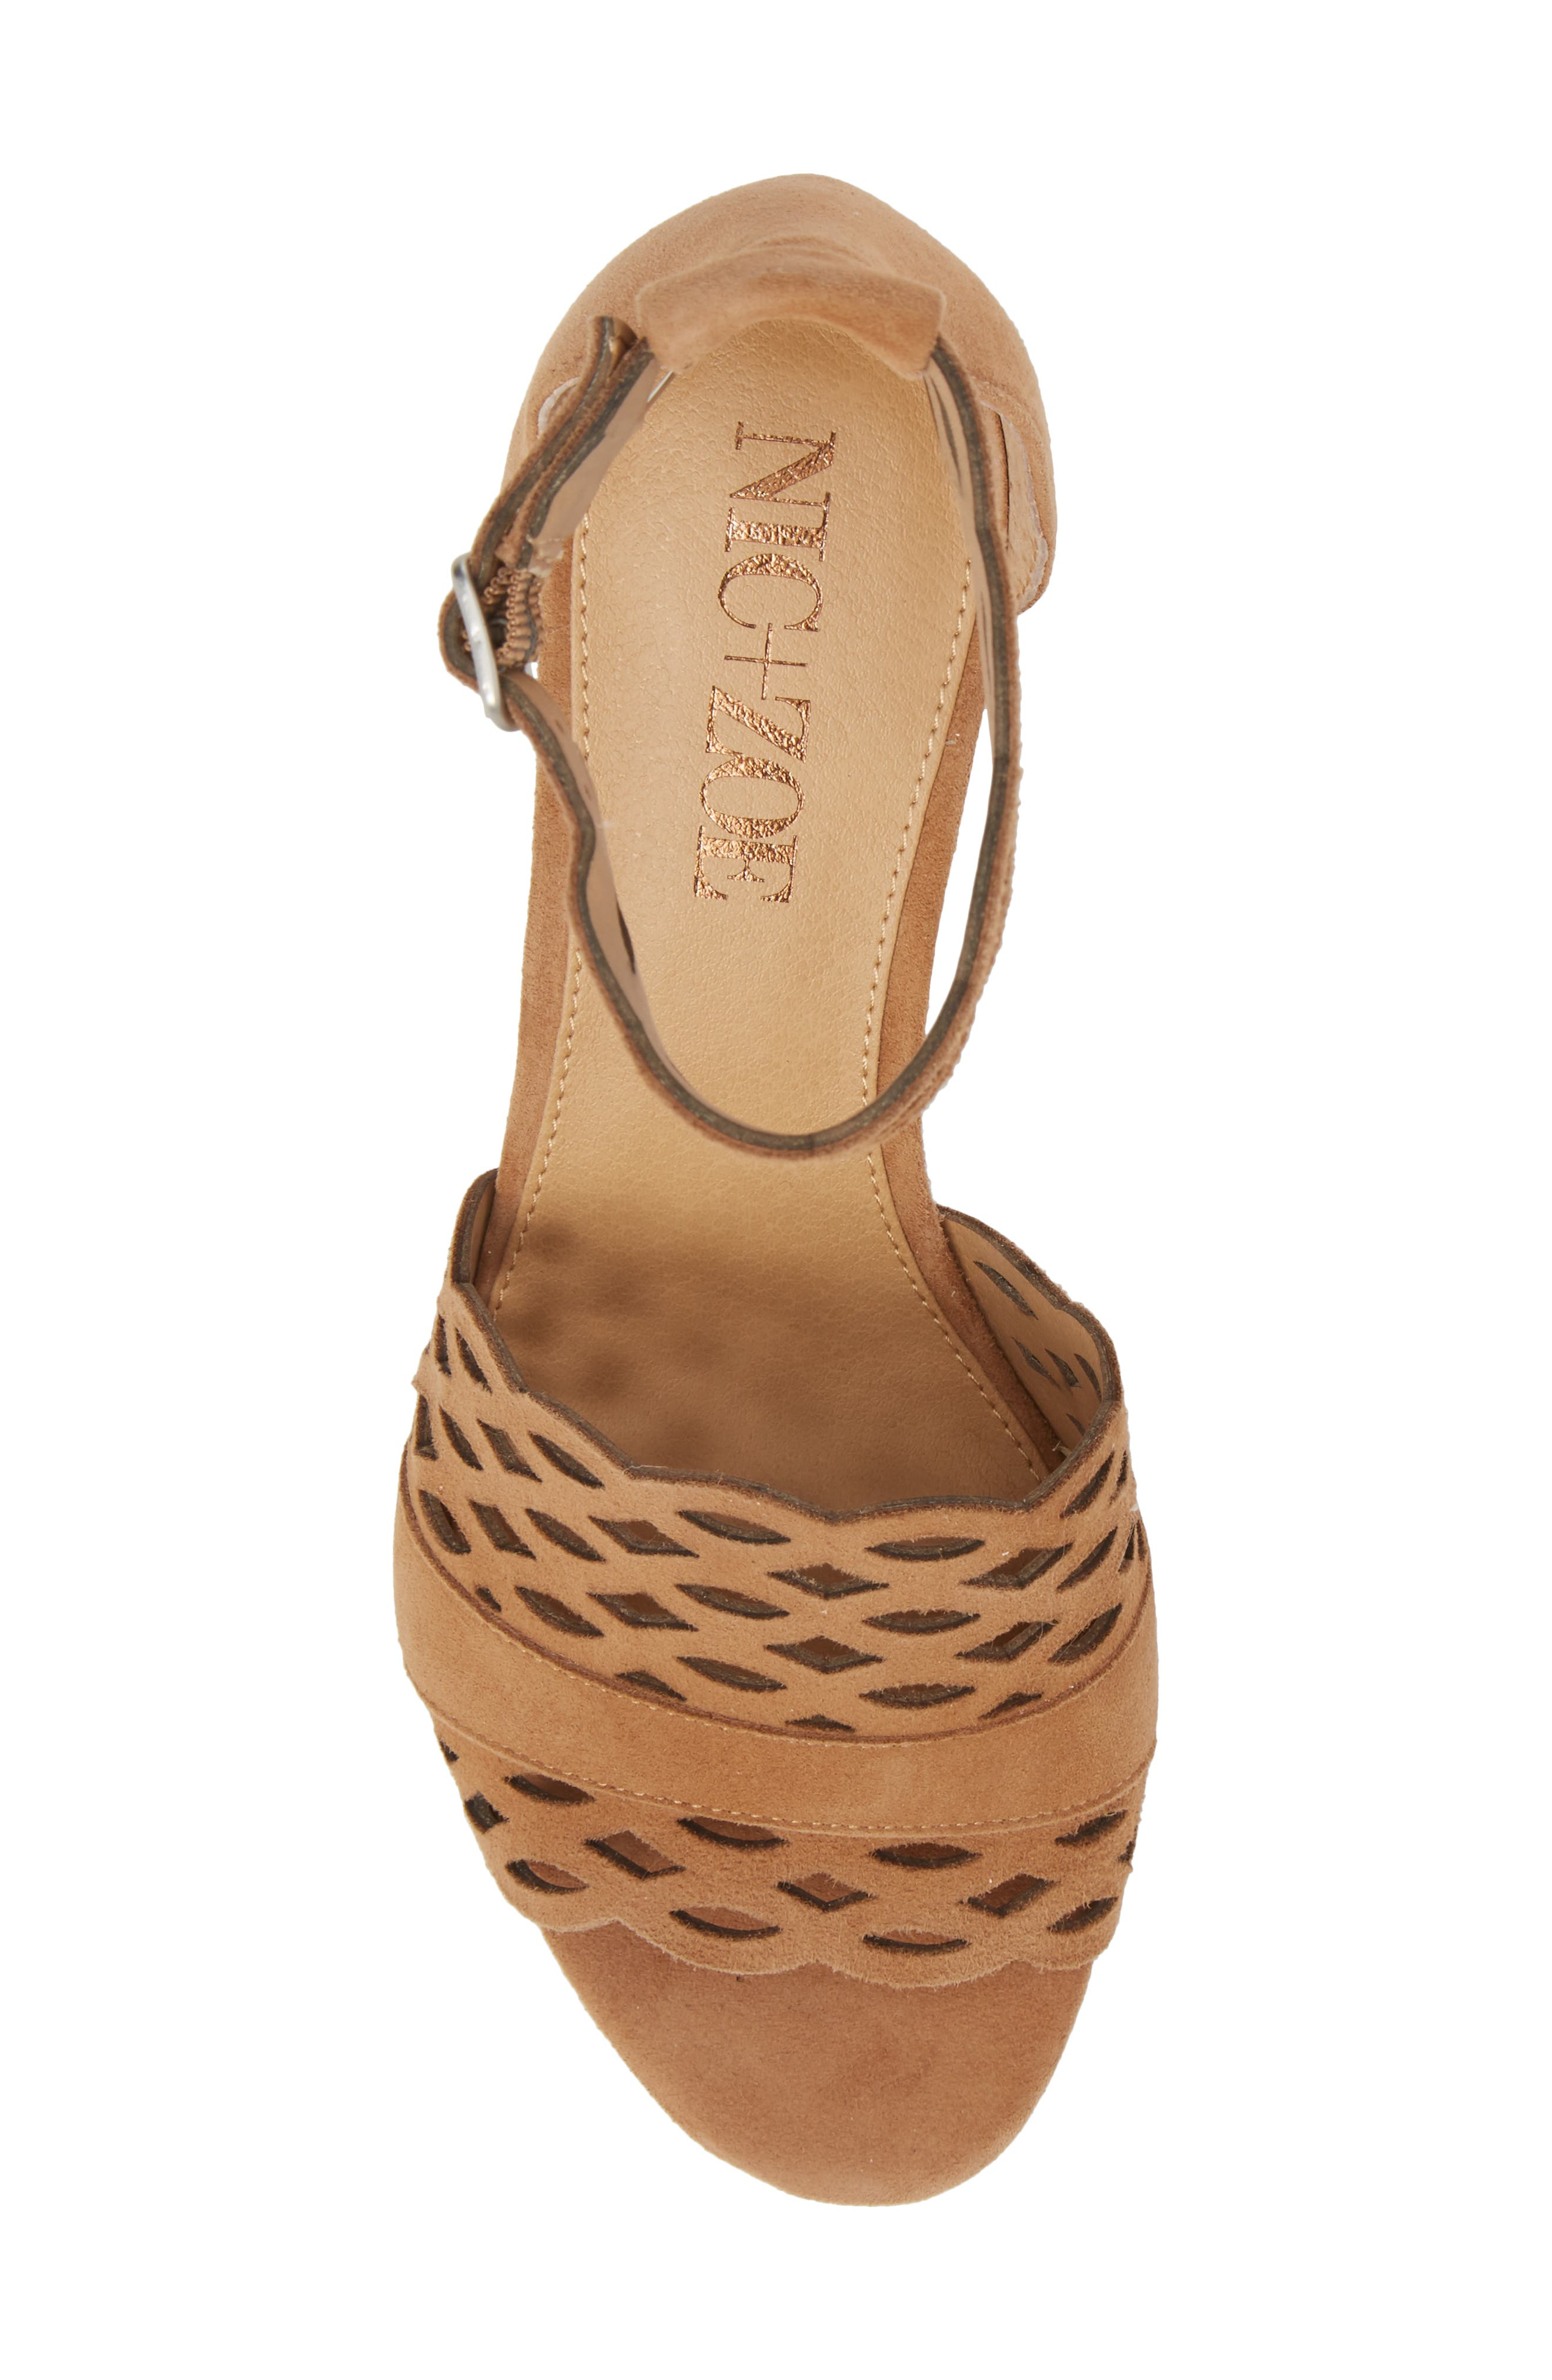 Flora Wedge Sandal,                             Alternate thumbnail 5, color,                             Fawn Leather